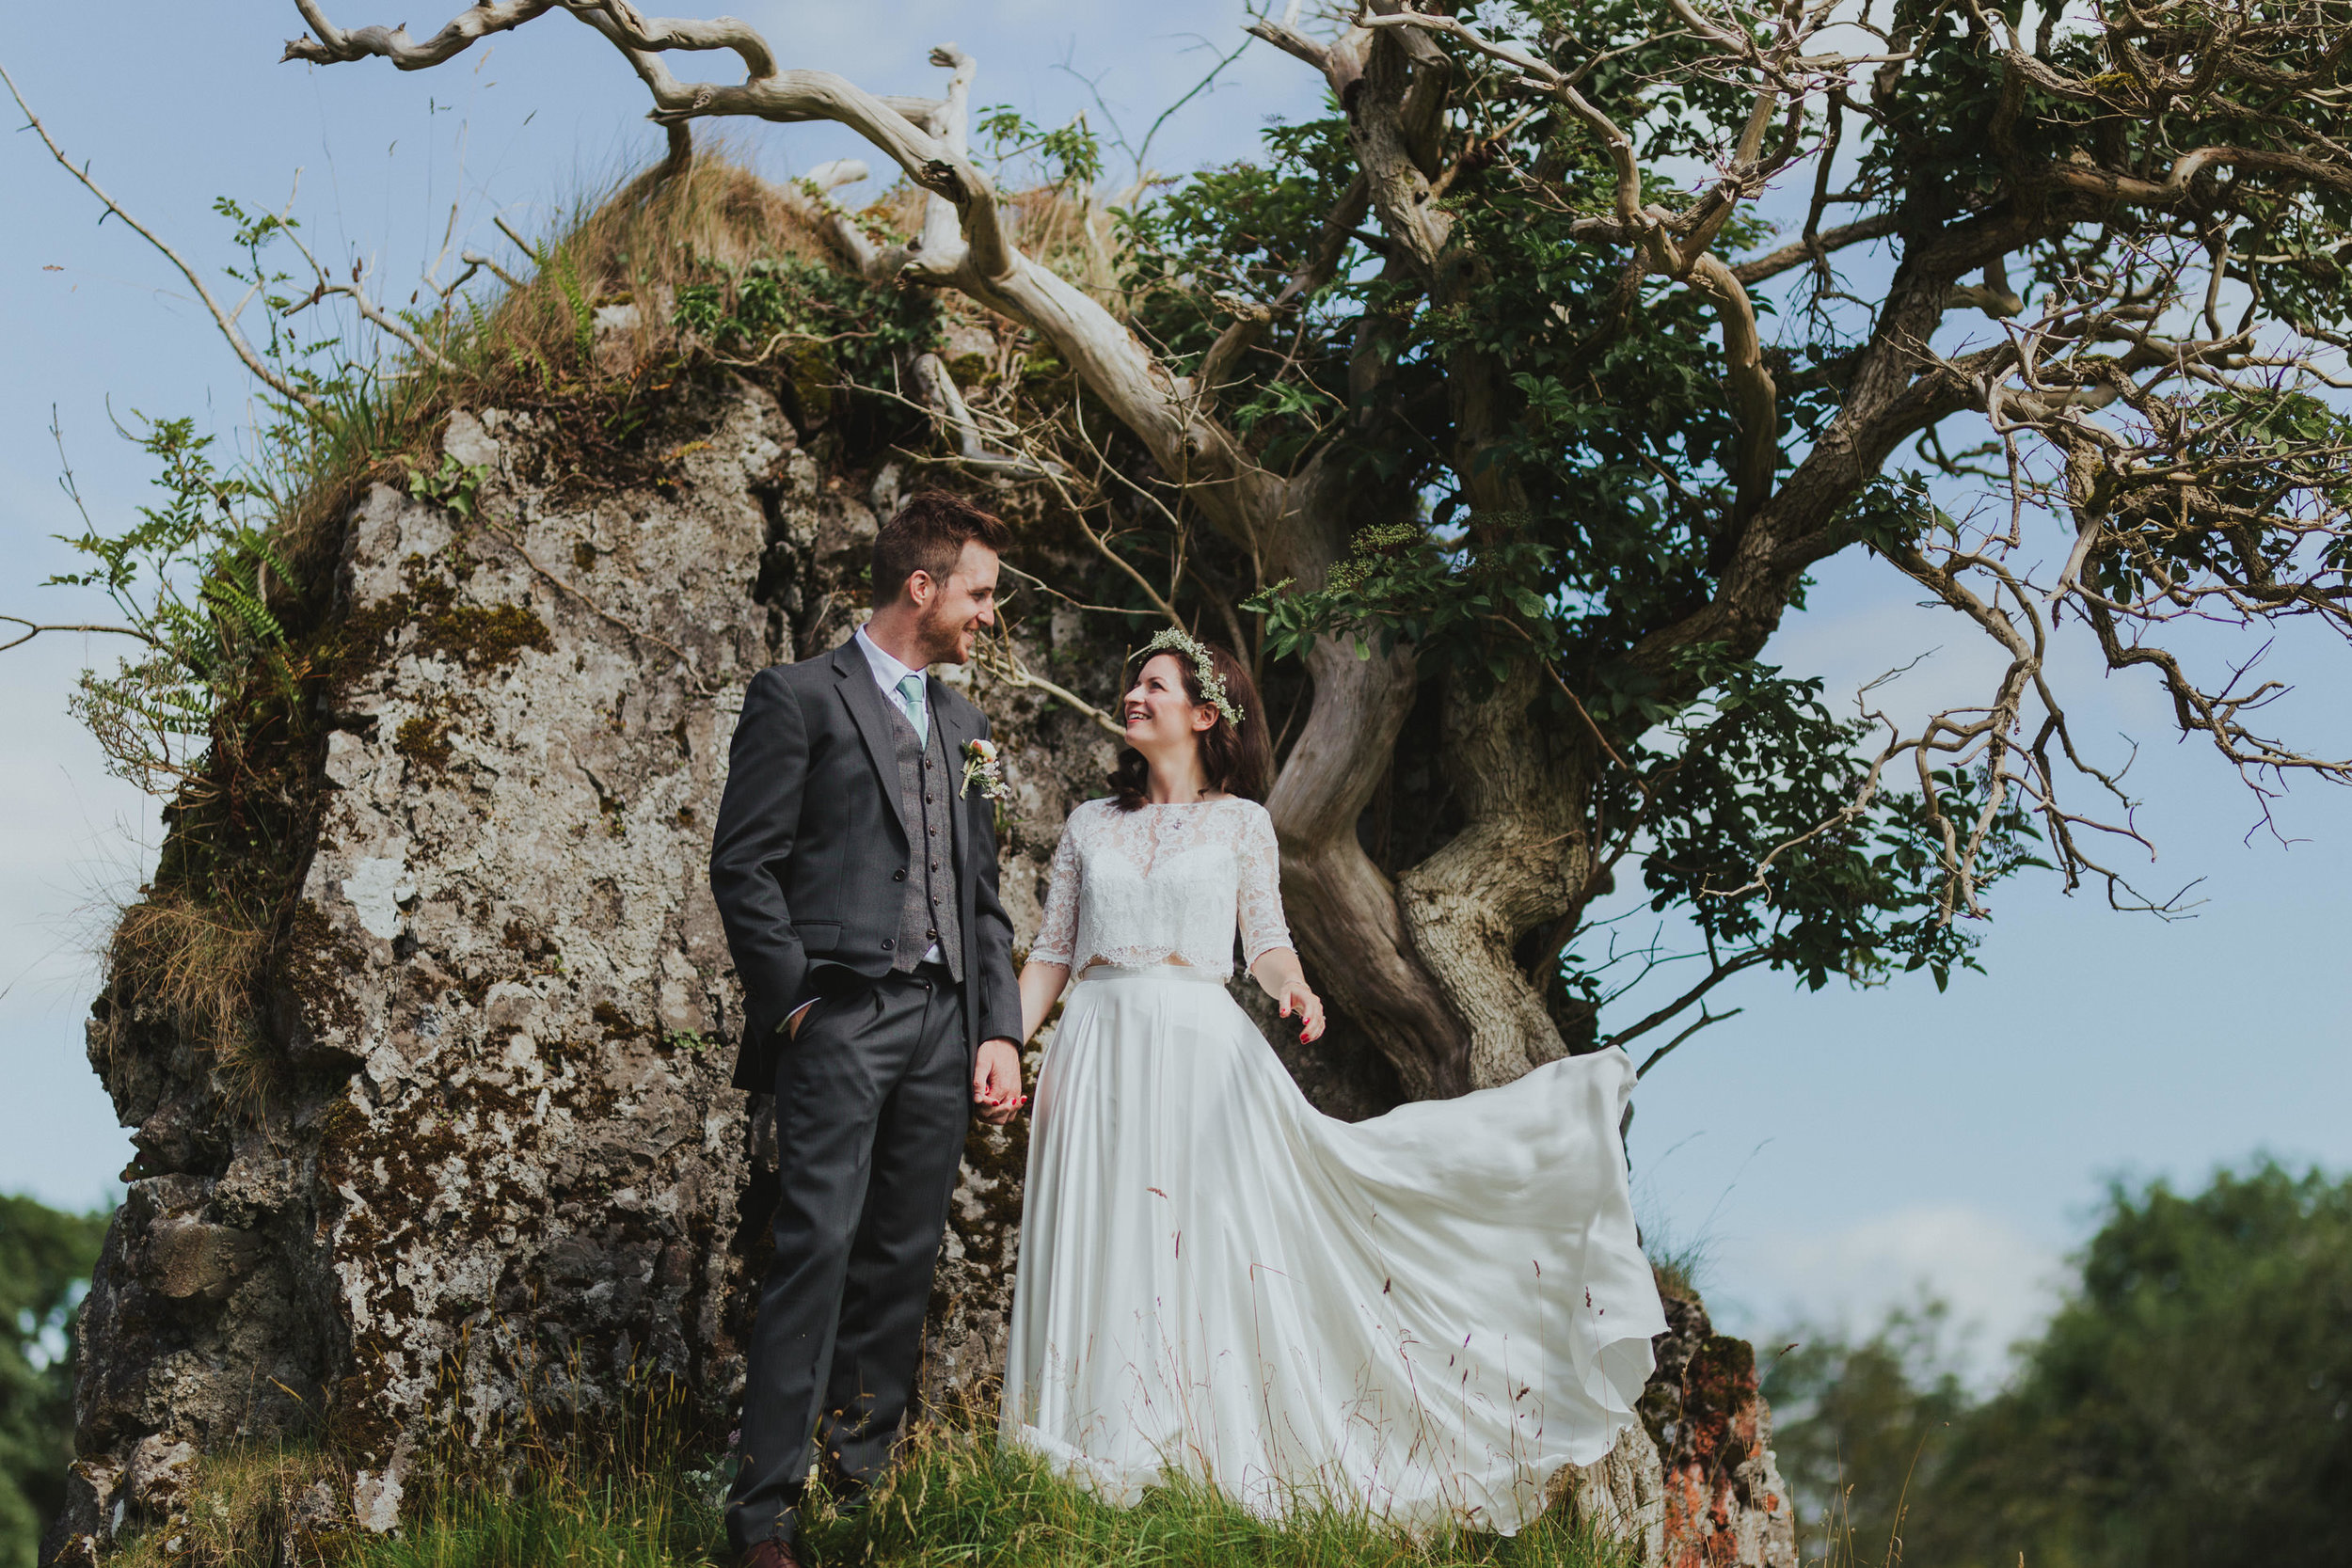 a+s_temple_house_sligo_wedding_livia_figueiredo_757.jpg